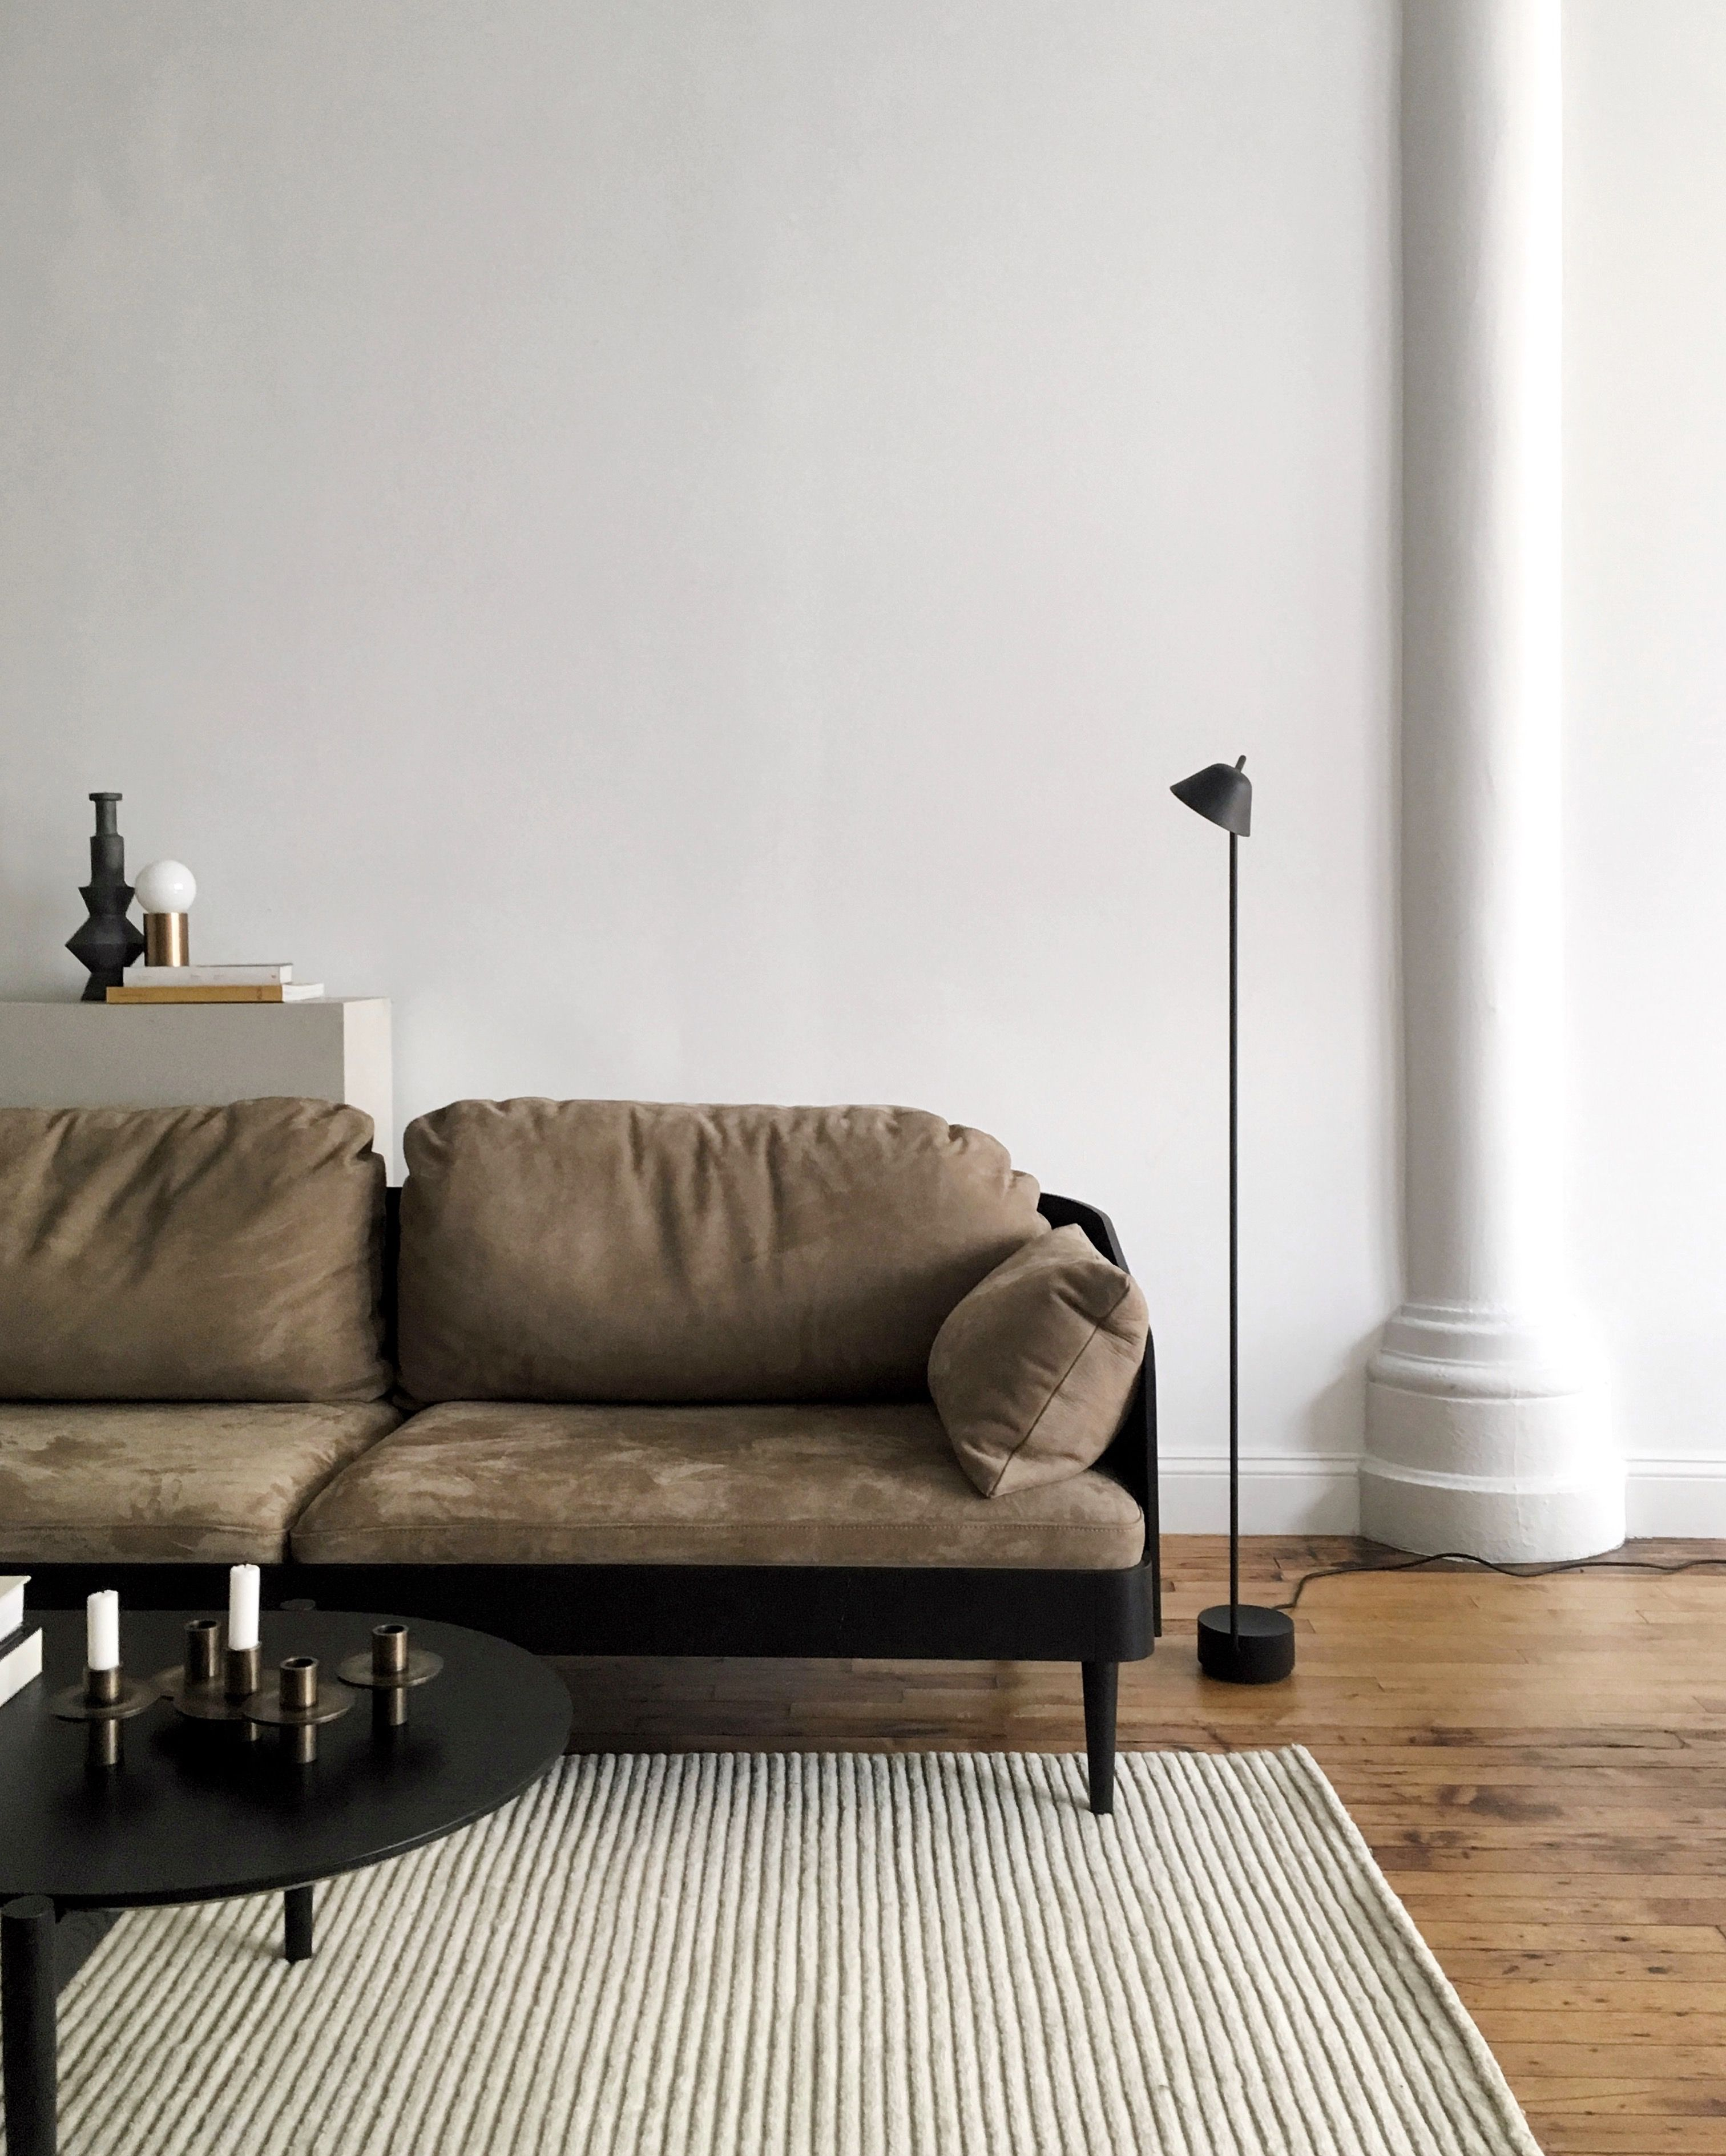 Menu Septembre Sofa By Theresa Arns And Our K Floor Lamp Jonas Wagell In Trnk Co Founder Ceo Tariq Dixon Studio Apartment